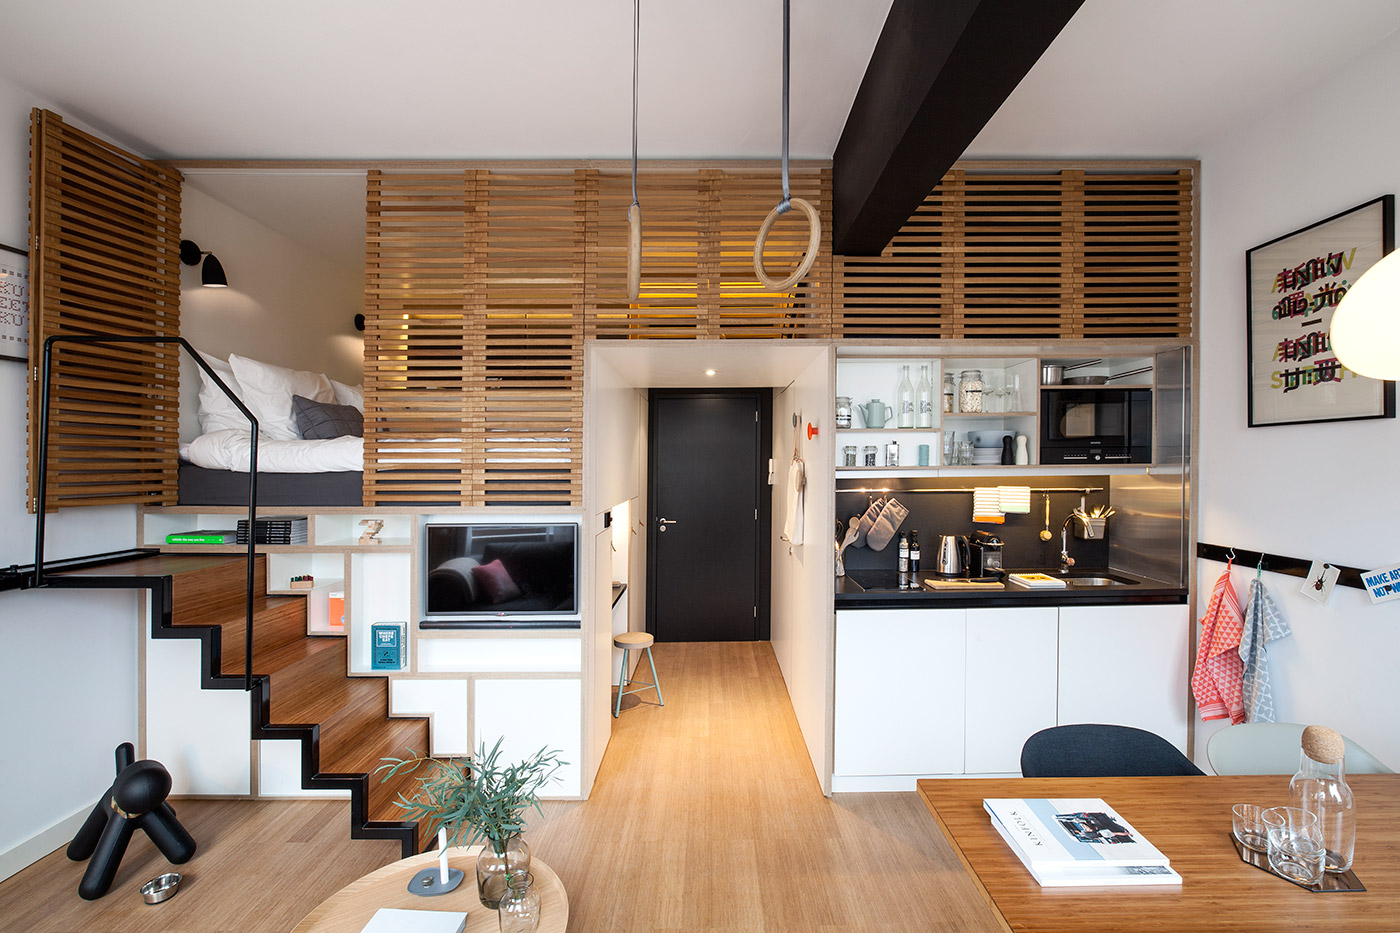 Small Apartment Design With Awesome Lofted Decor Ideas Roohome